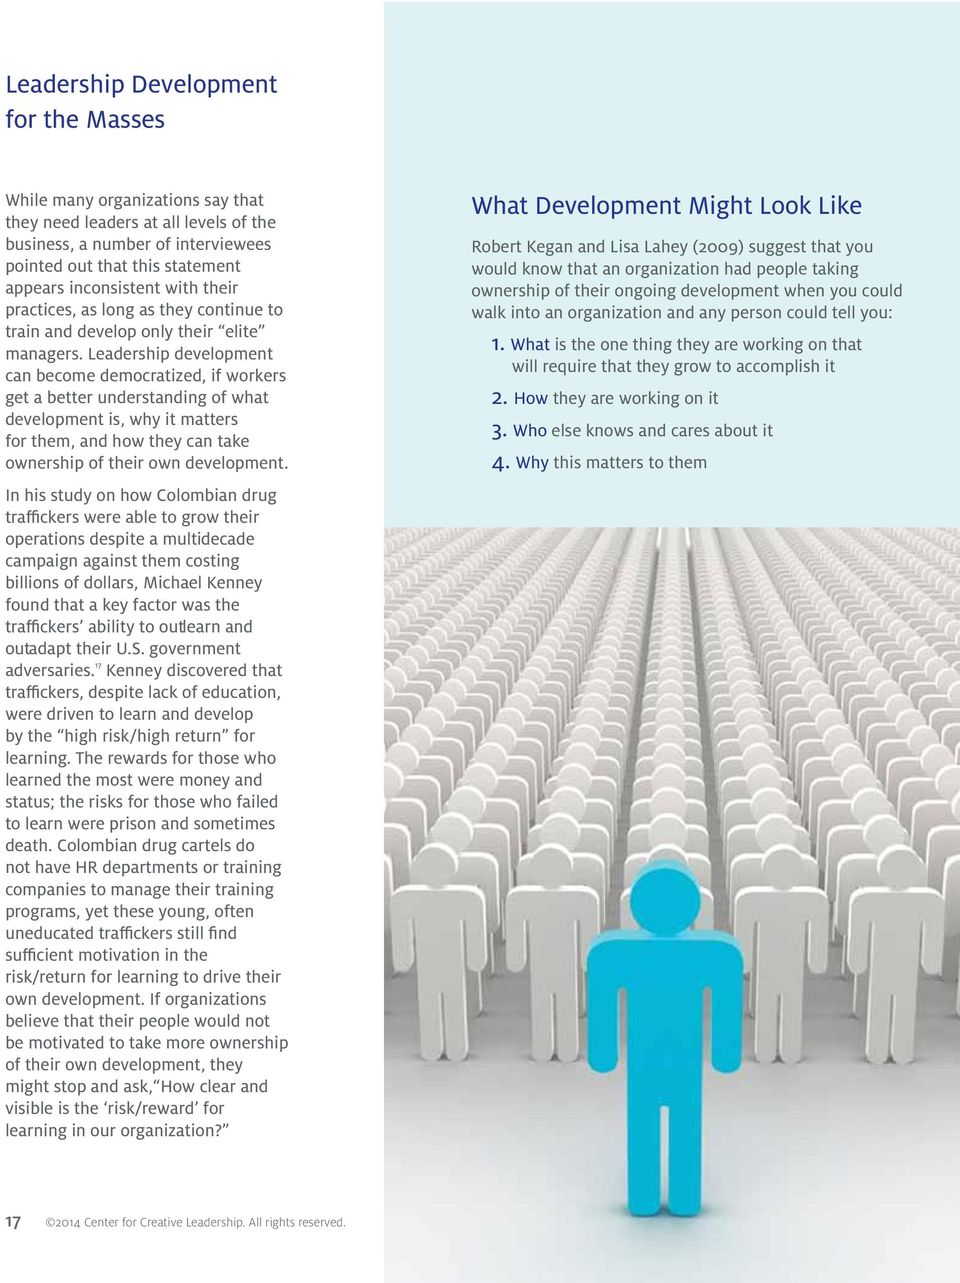 Leadership development can become democratized, if workers get a better understanding of what development is, why it matters for them, and how they can take ownership of their own development.